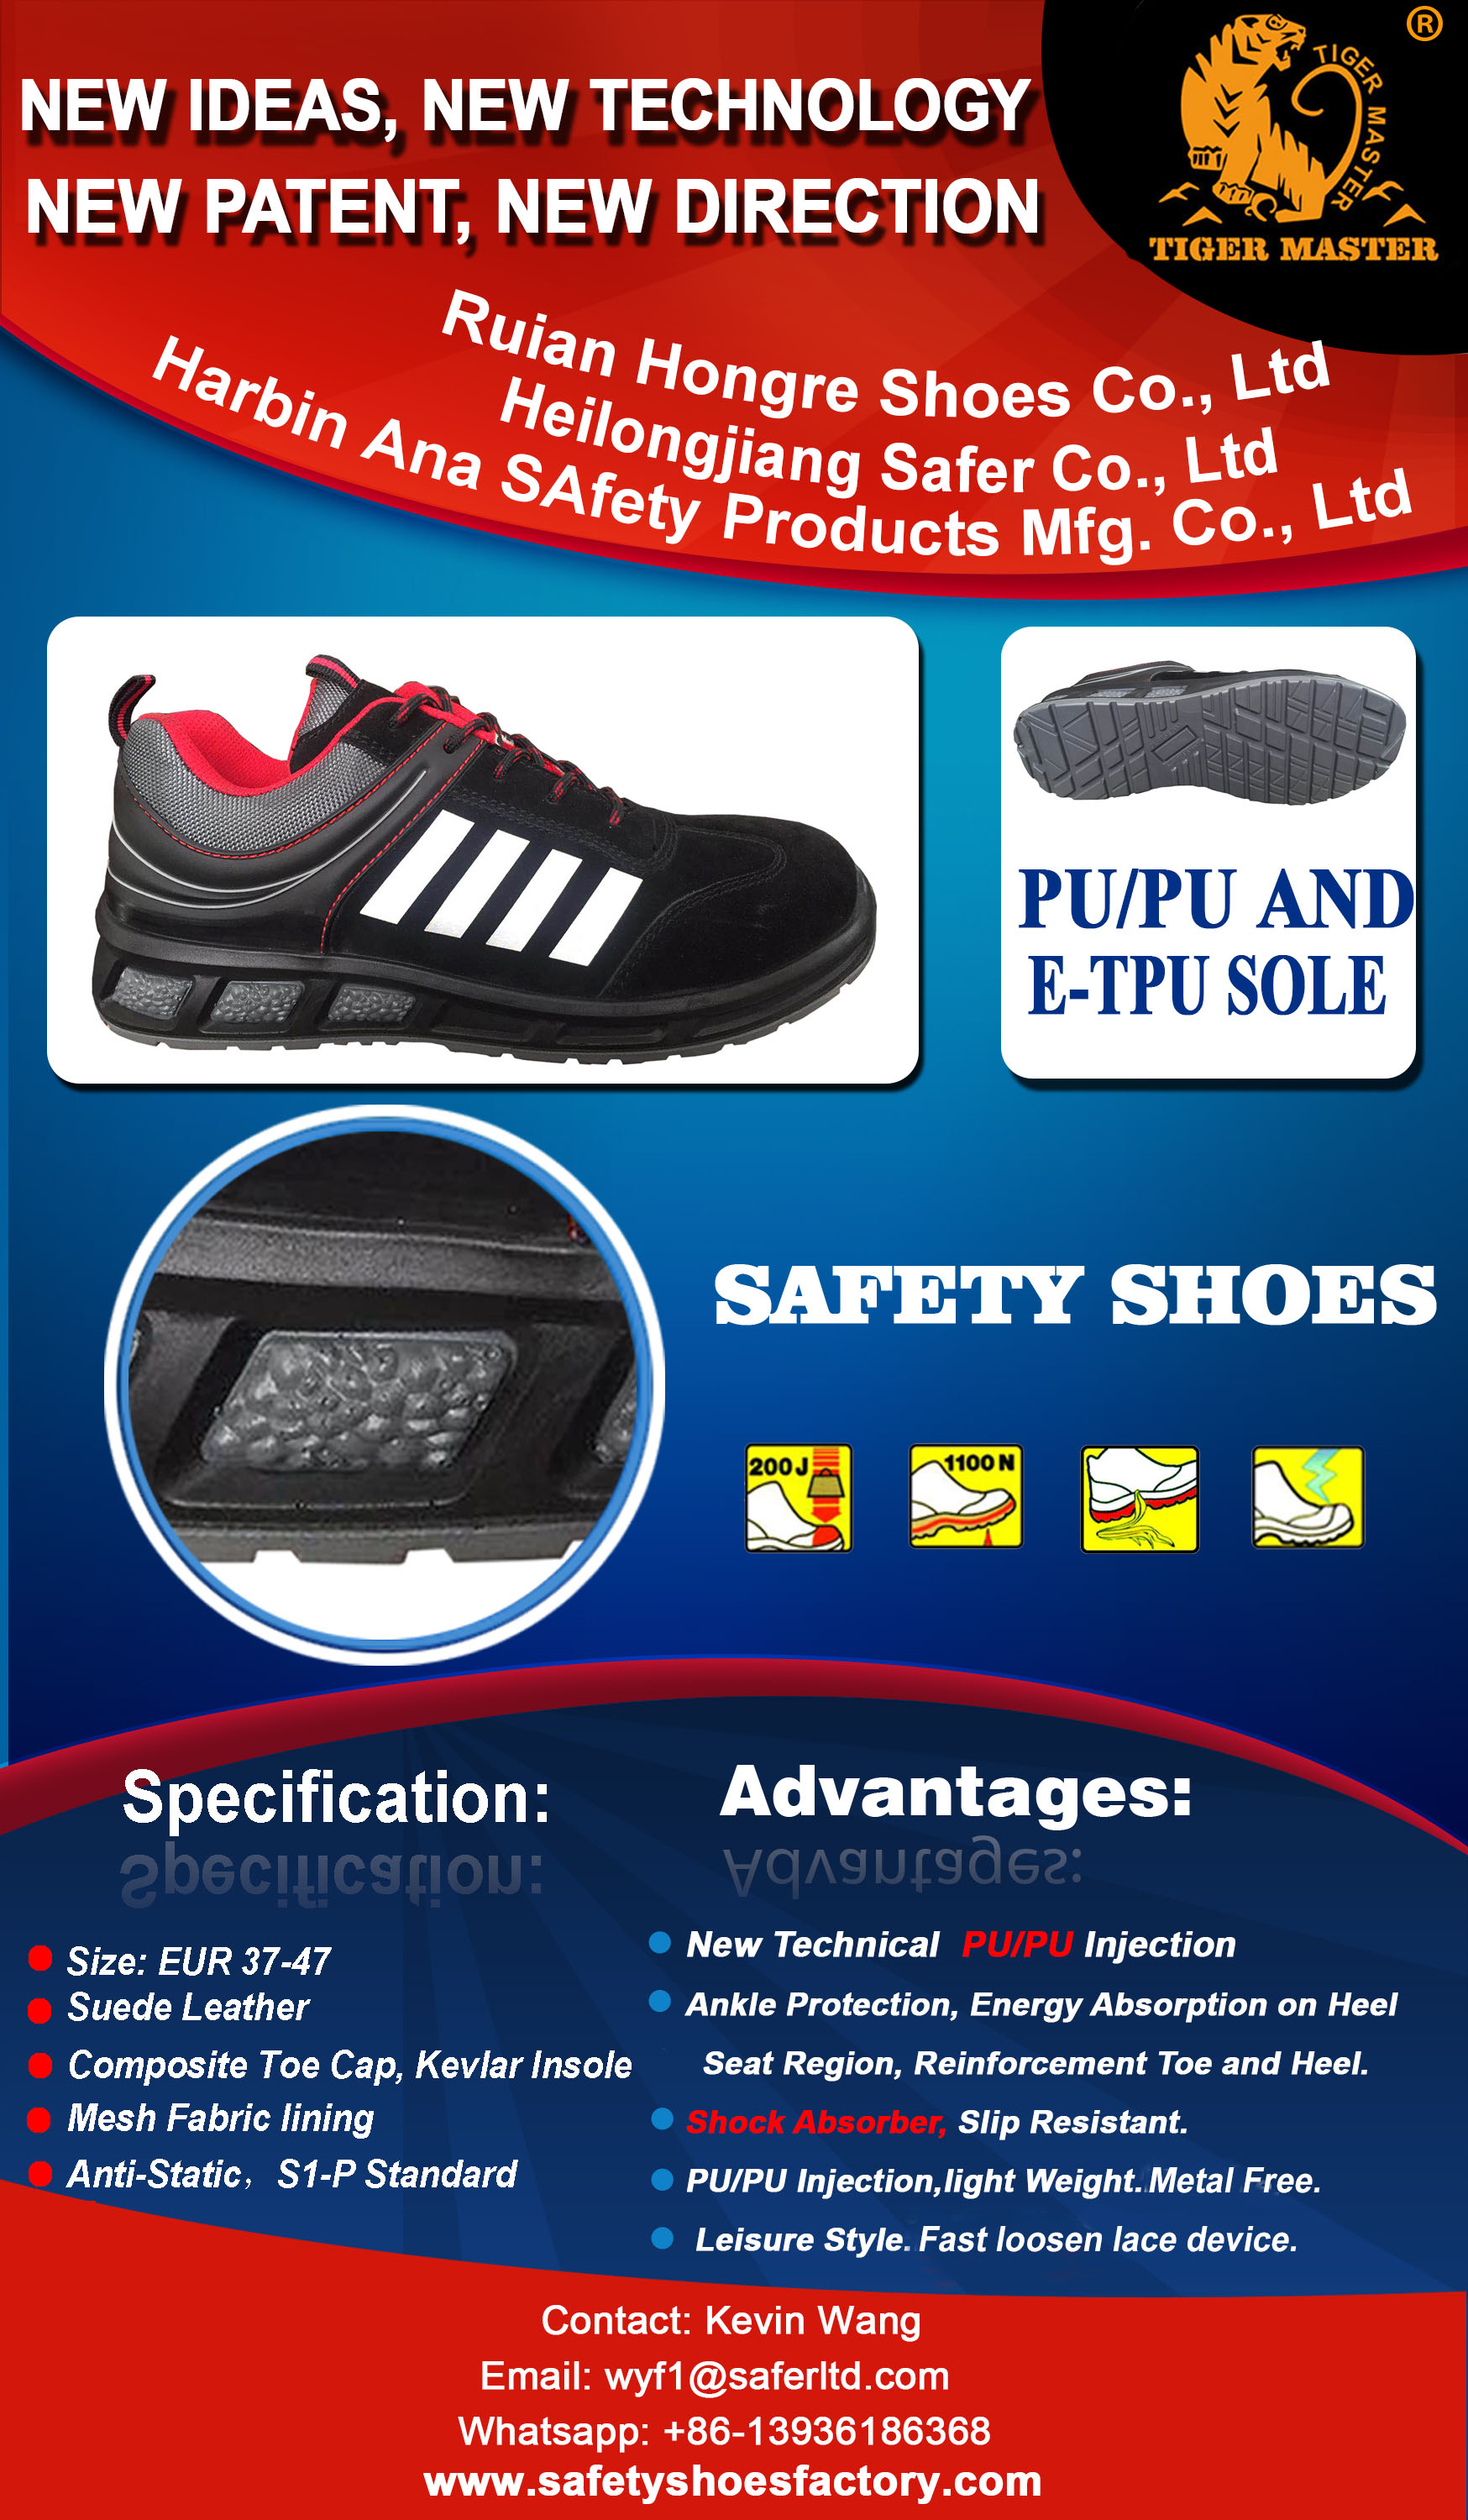 ETPU SOLE SAFETY SHOES